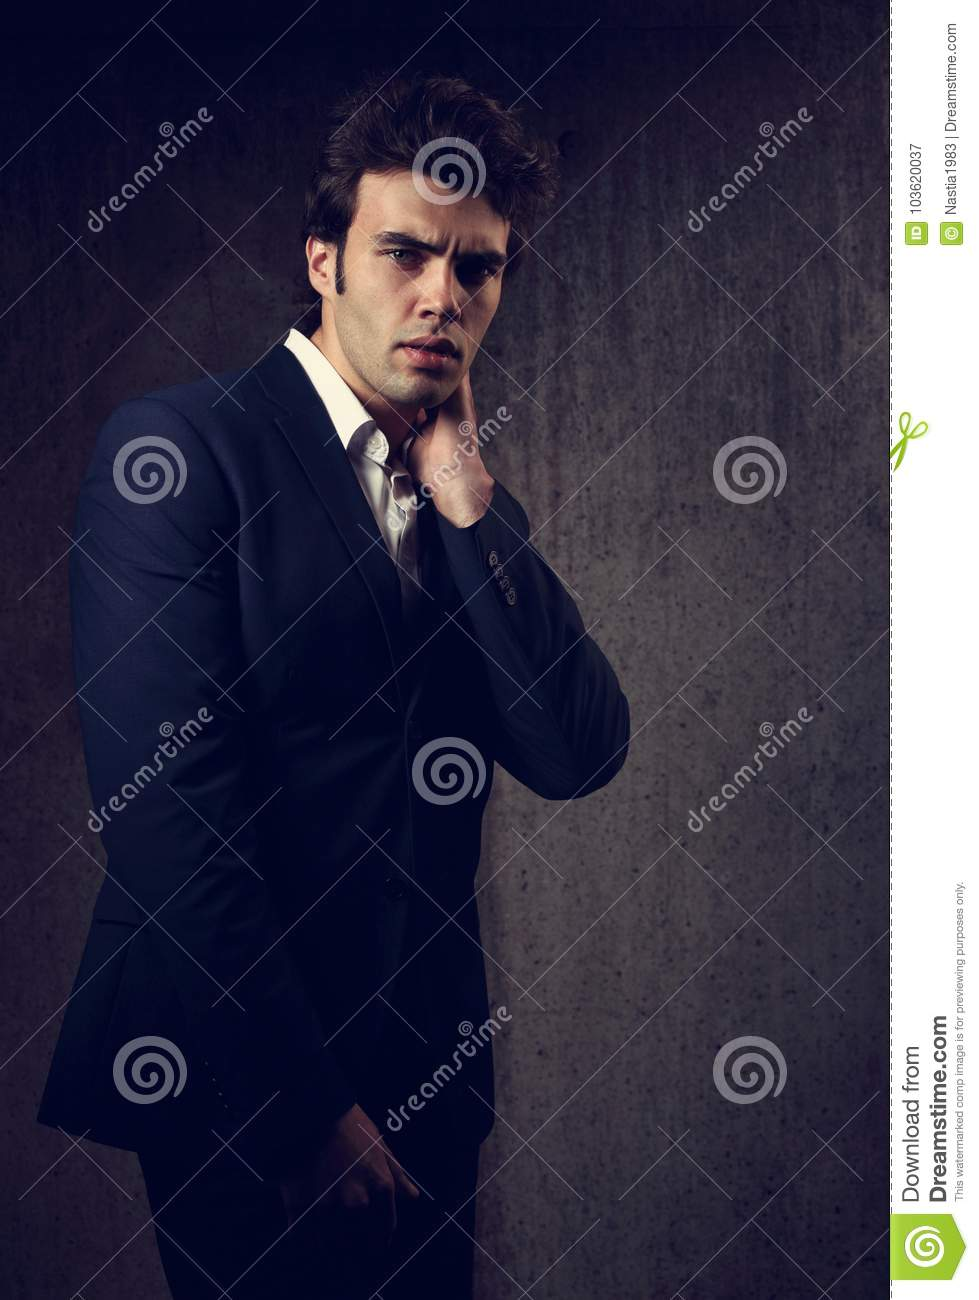 00c6a240 Charismatic handsome male model posing in blue fashion suit and white style  shirt looking on dark shadow background.